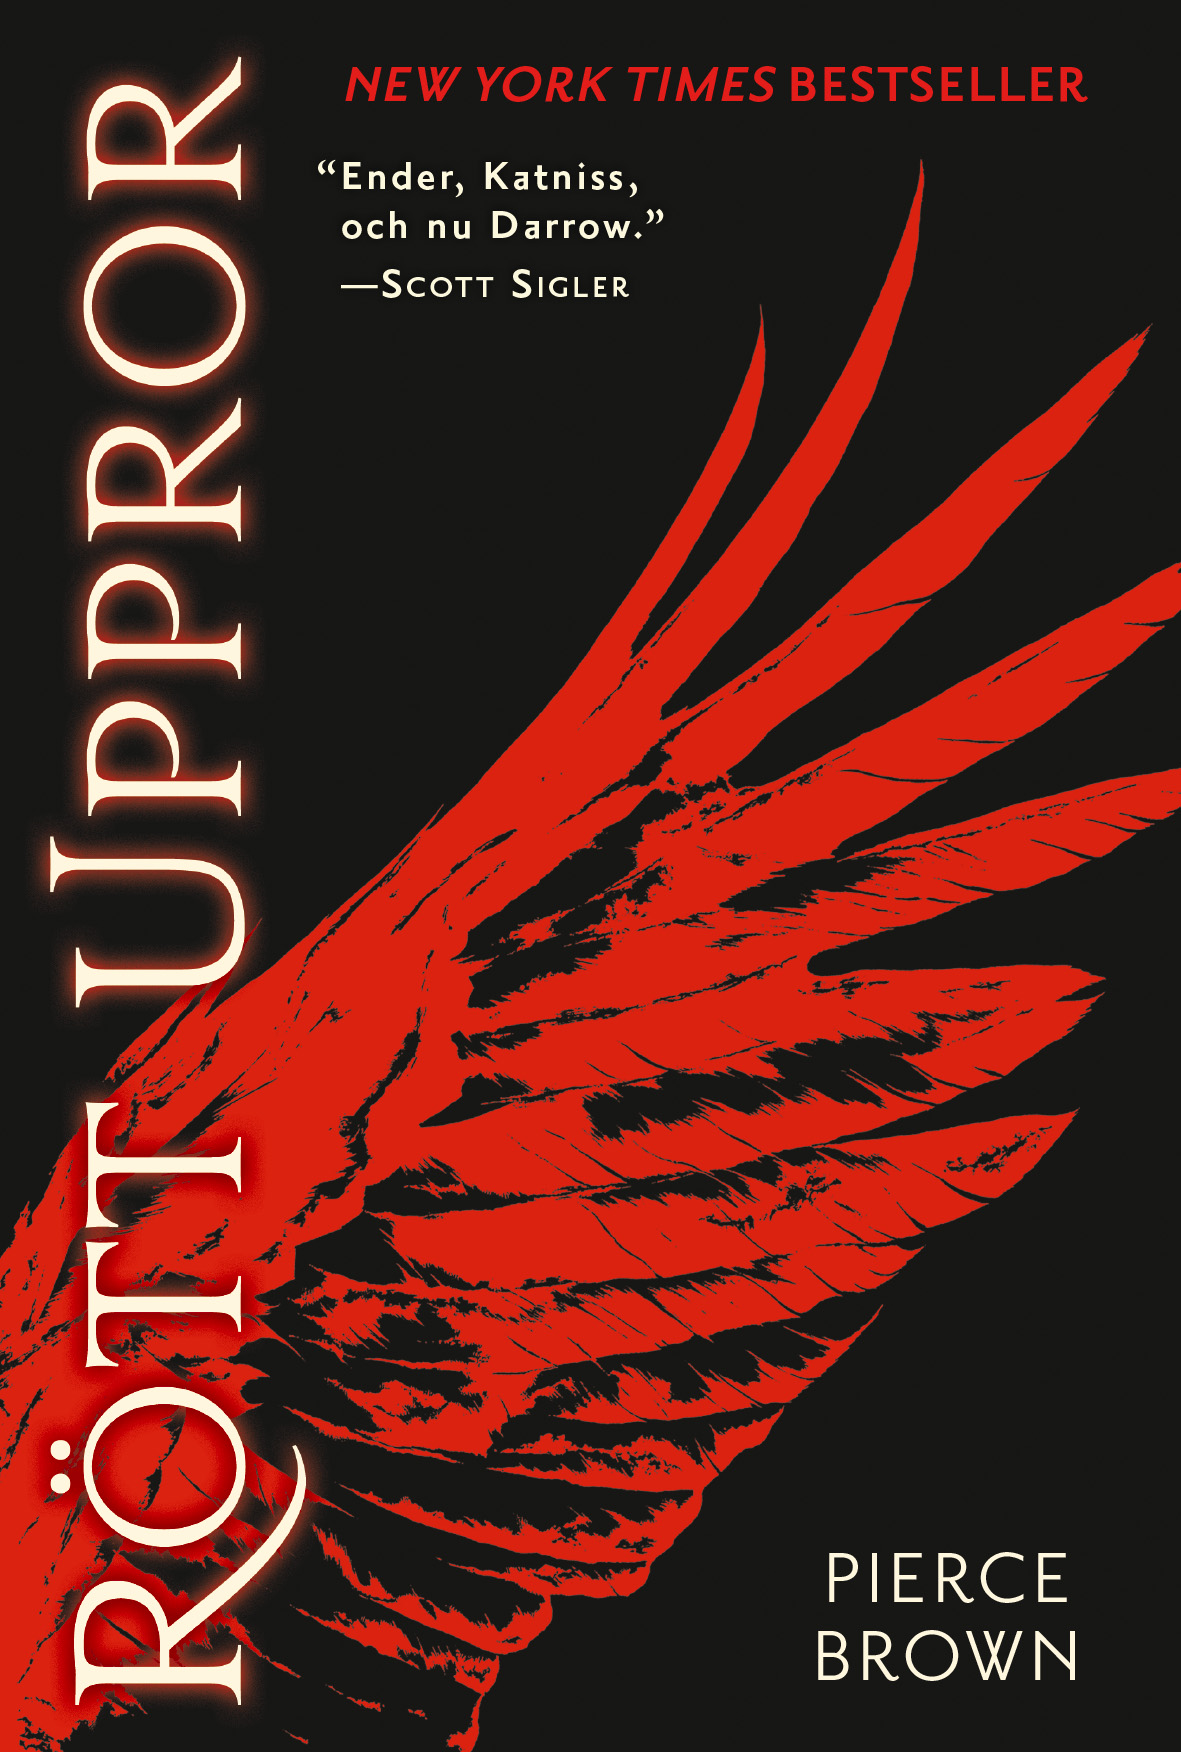 Recension: Rött uppror av Pierce Brown